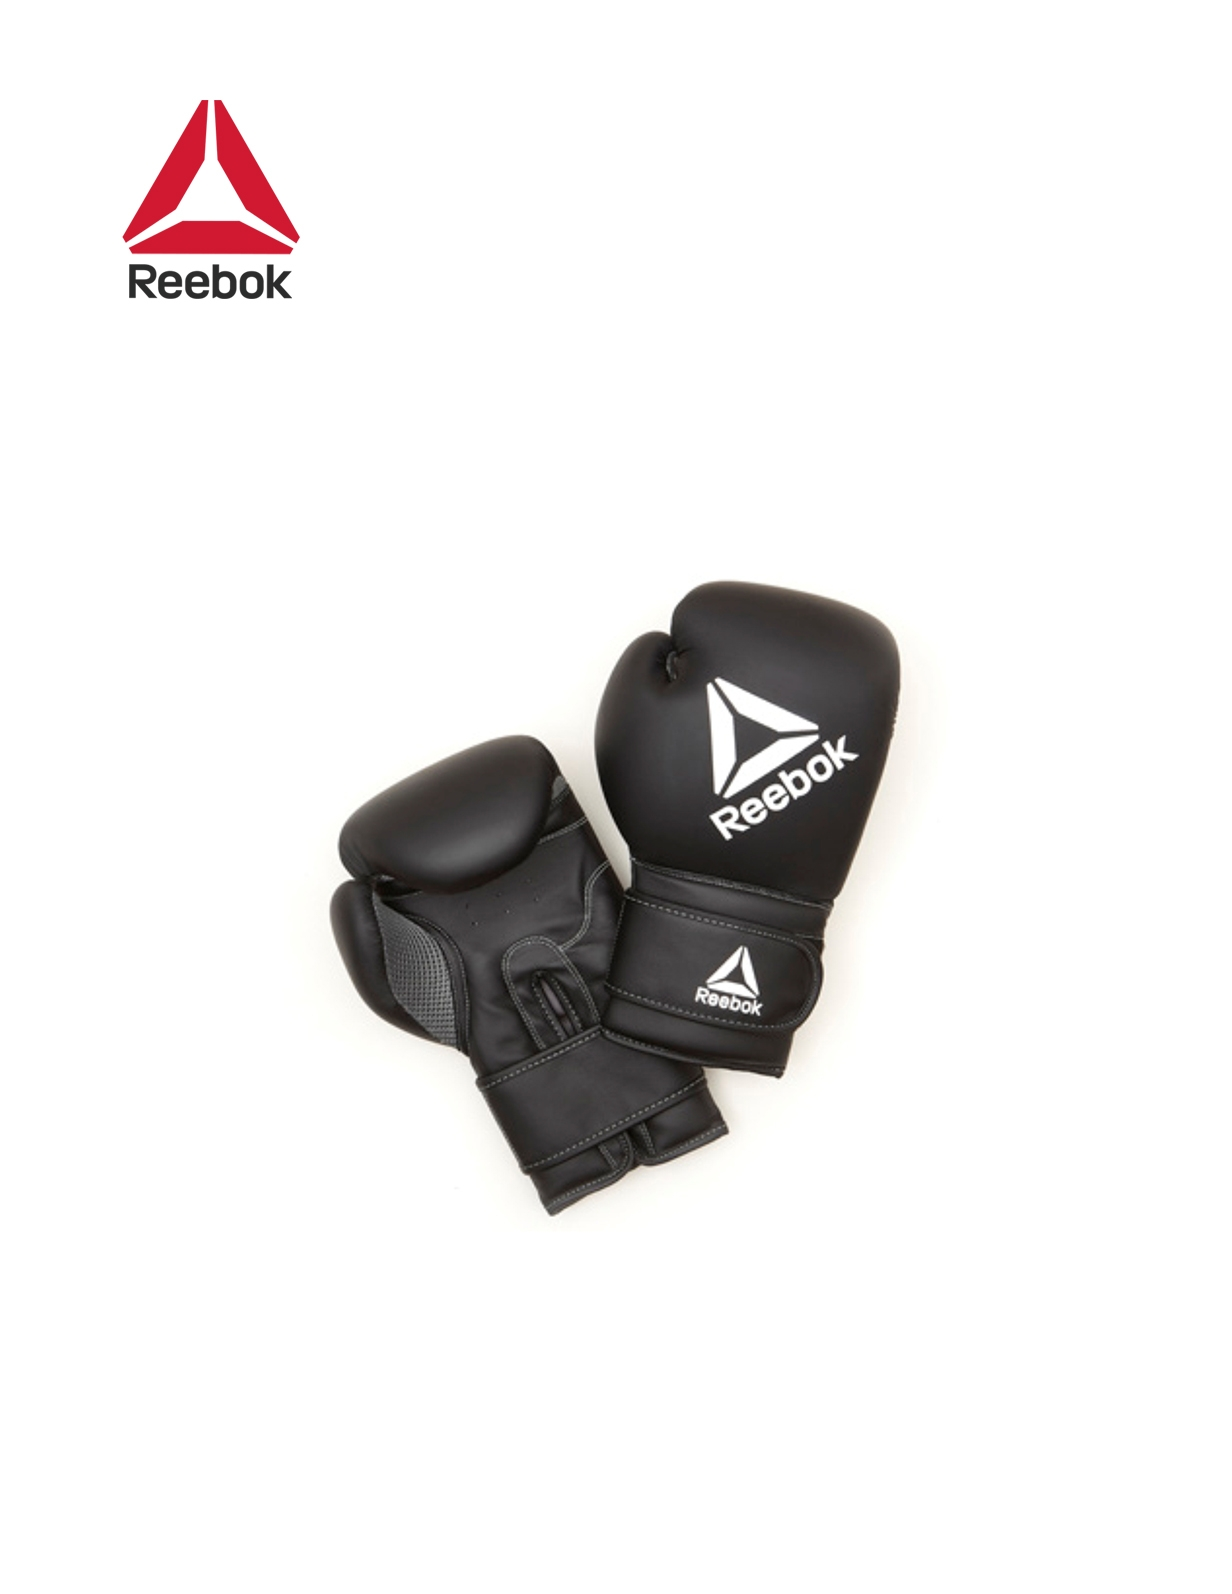 RETAIL BOXING GLOVES- BLACK